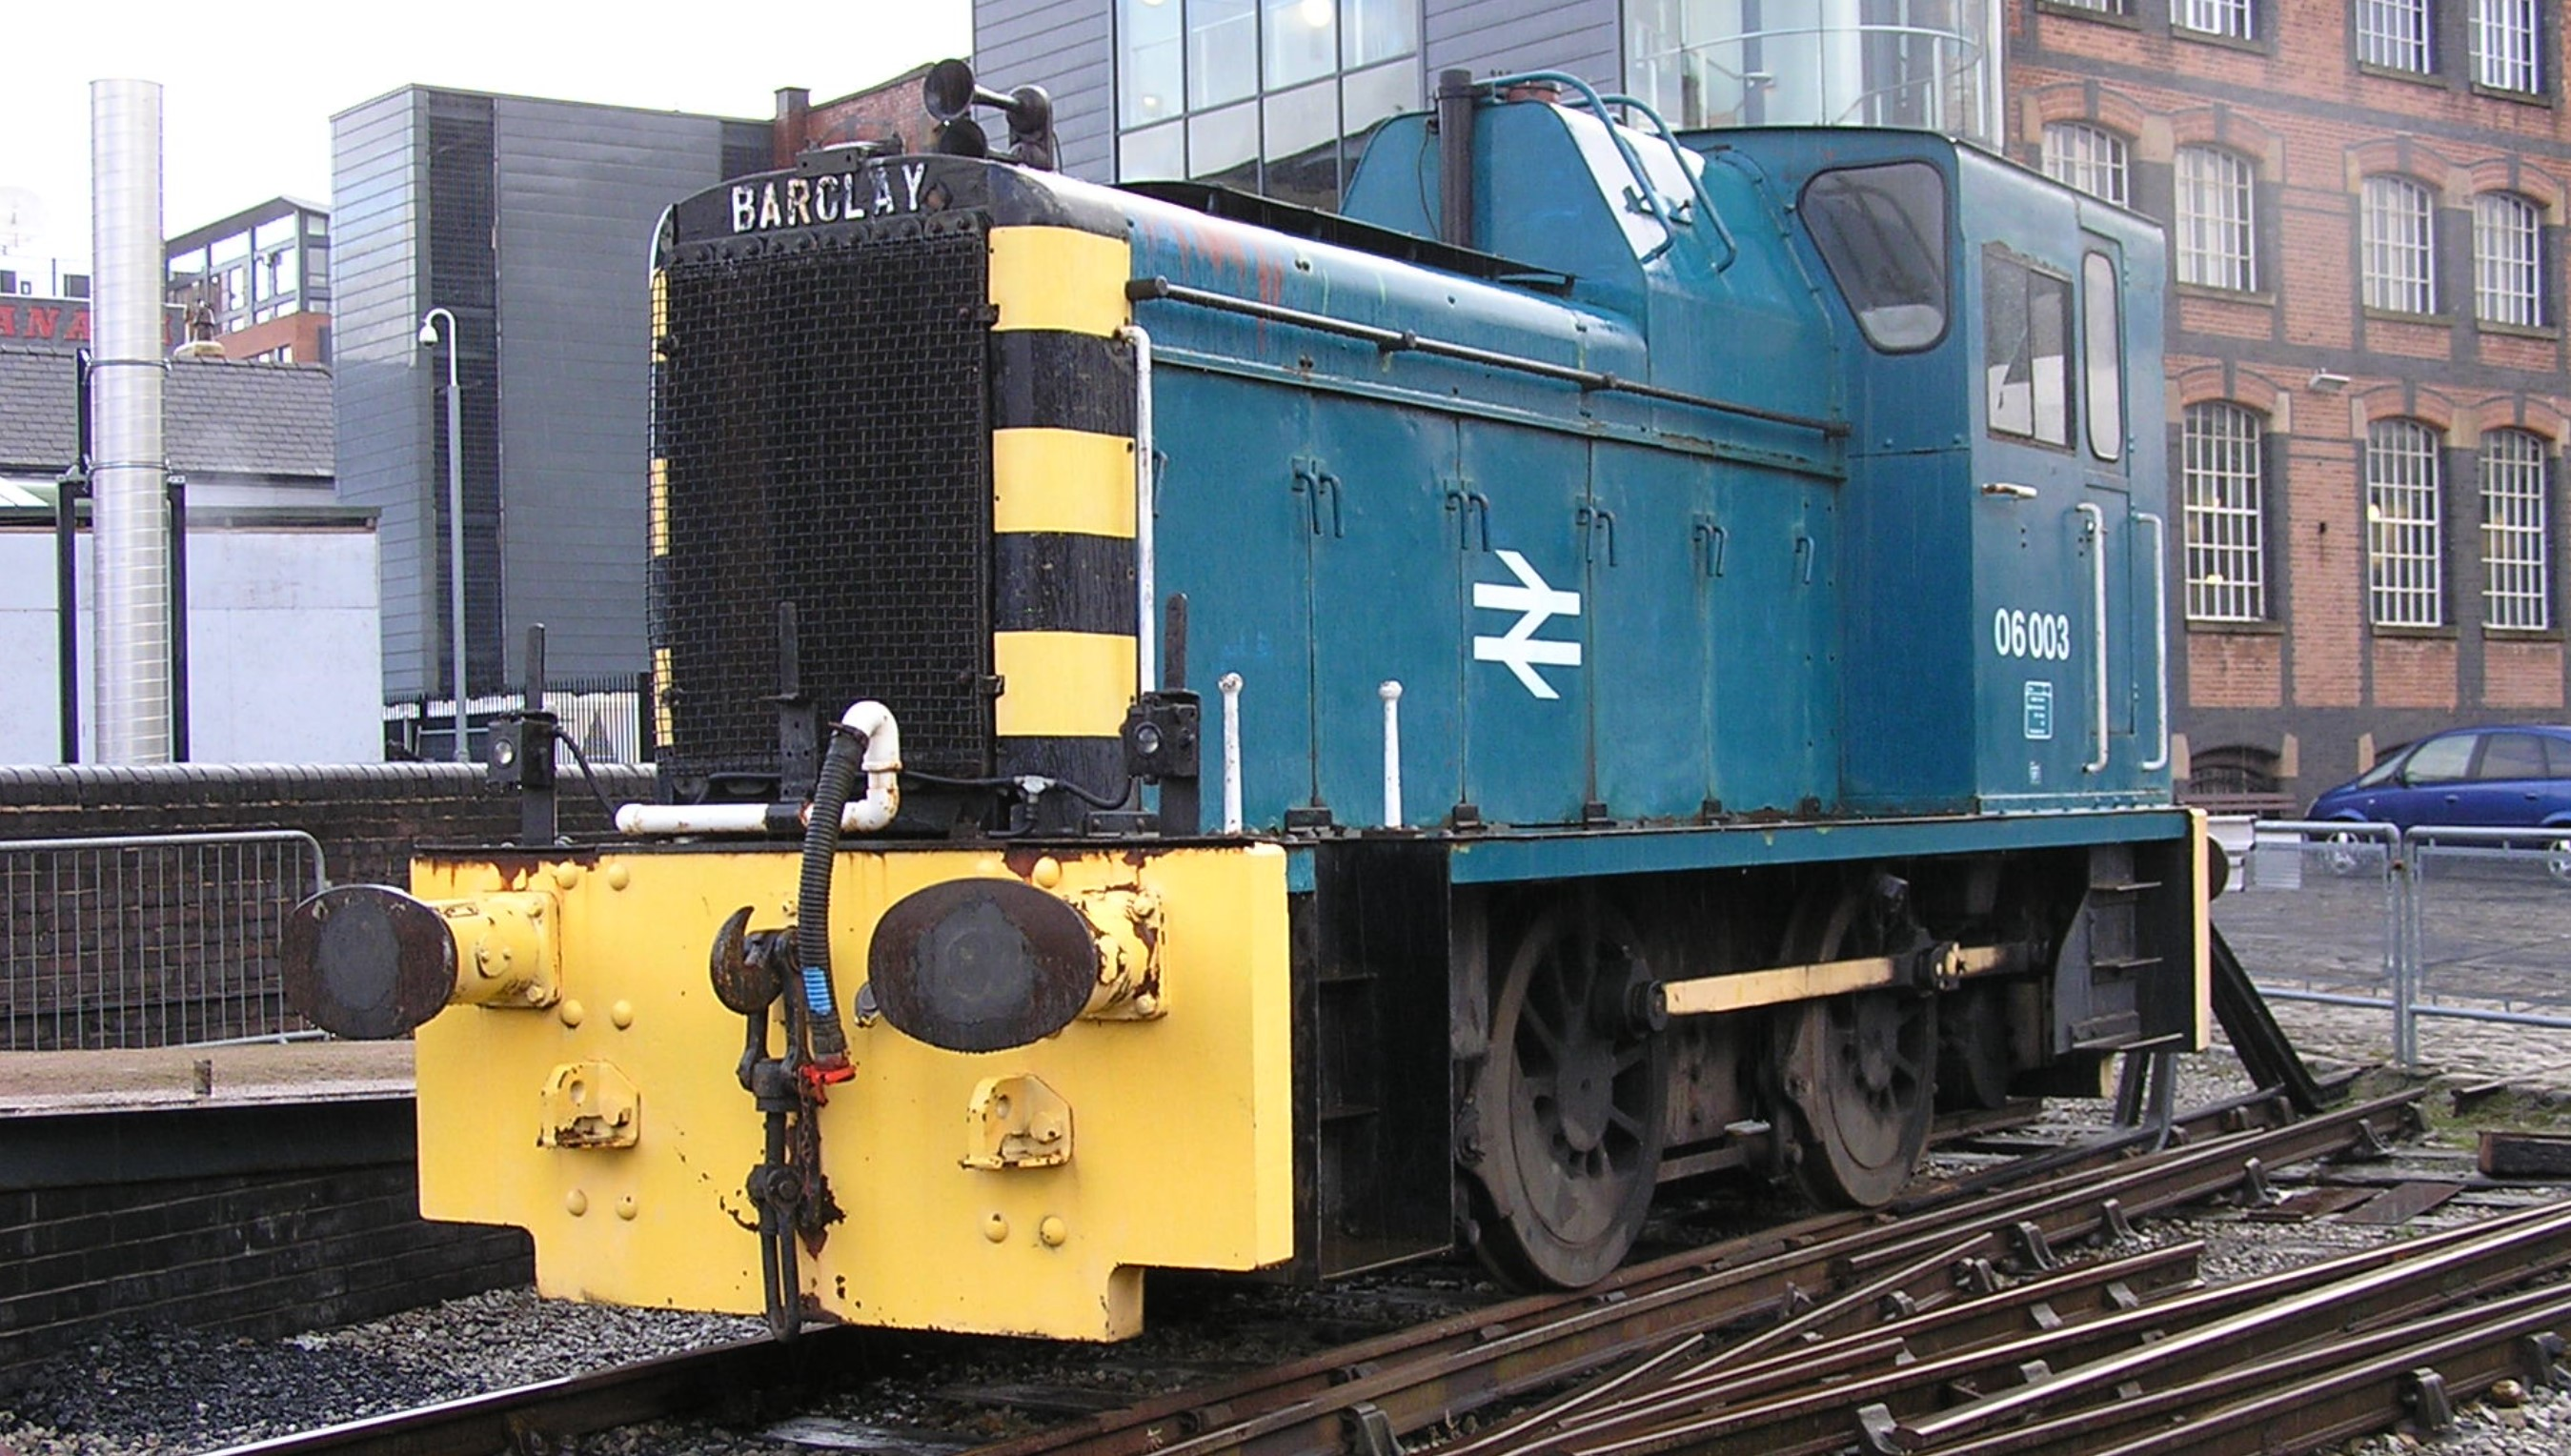 06003 at the Museum of Science & Industry in Manchester in December 2011. ©Gillett's Crossing